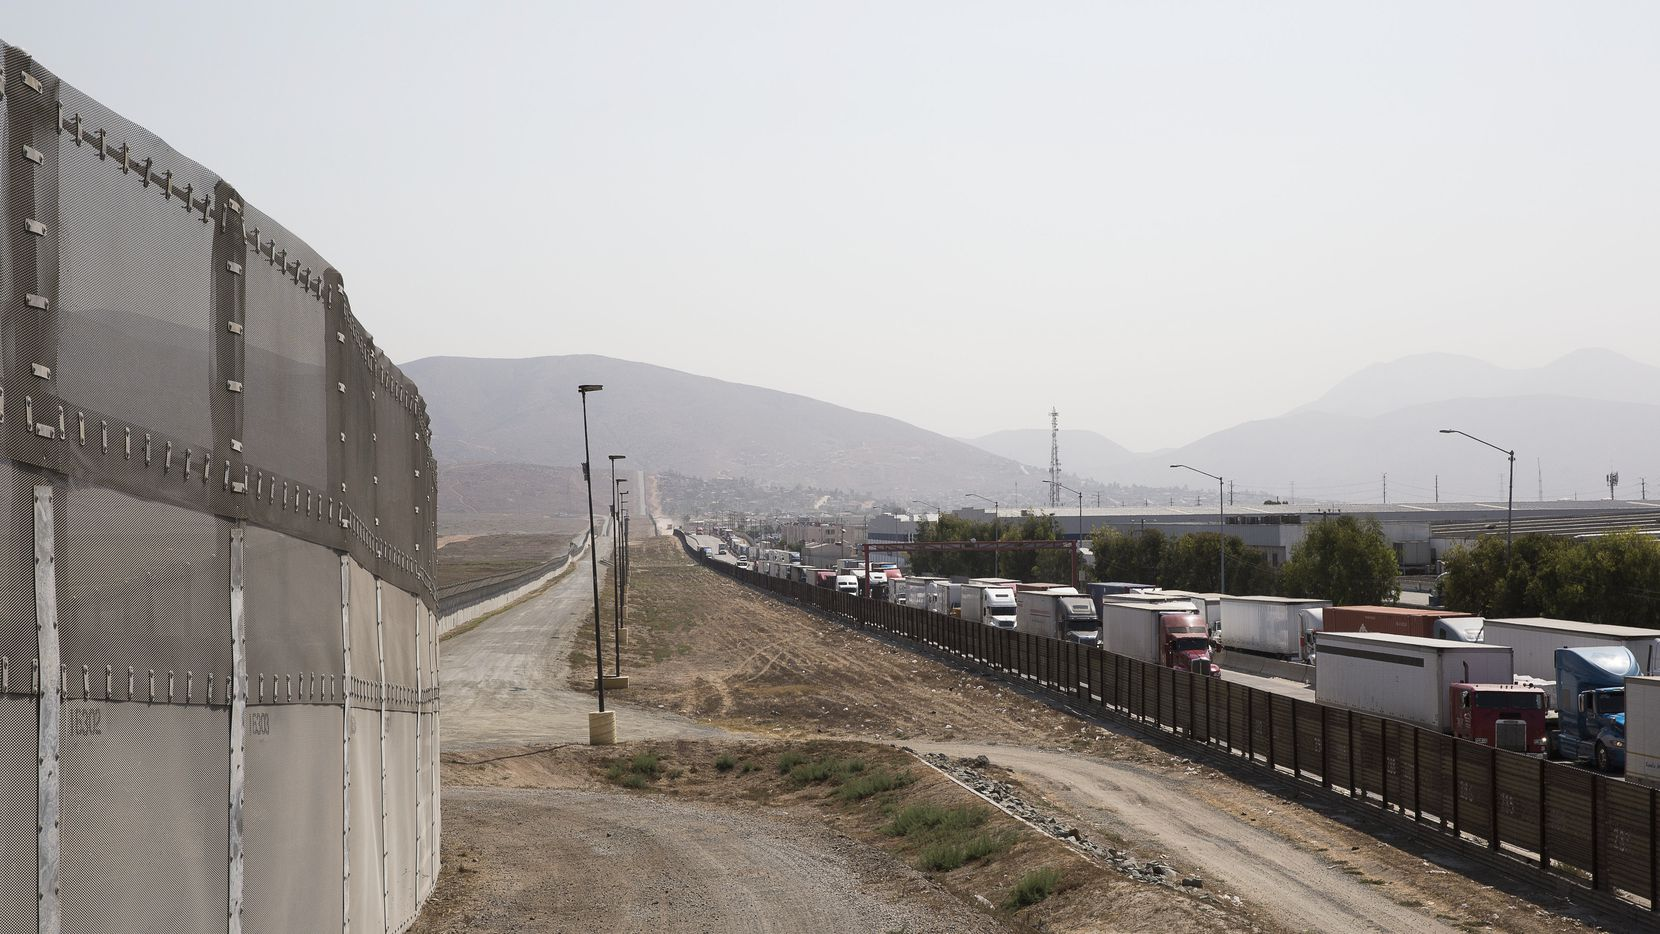 A long line of trucks coming from Tijuana, Mexico, enter the U.S., on the south end of San Diego, Aug. 26, 2016. Abandoning the free-trade deal with America's neighbors would mean upending major industries and a generation's worth of economic integration.